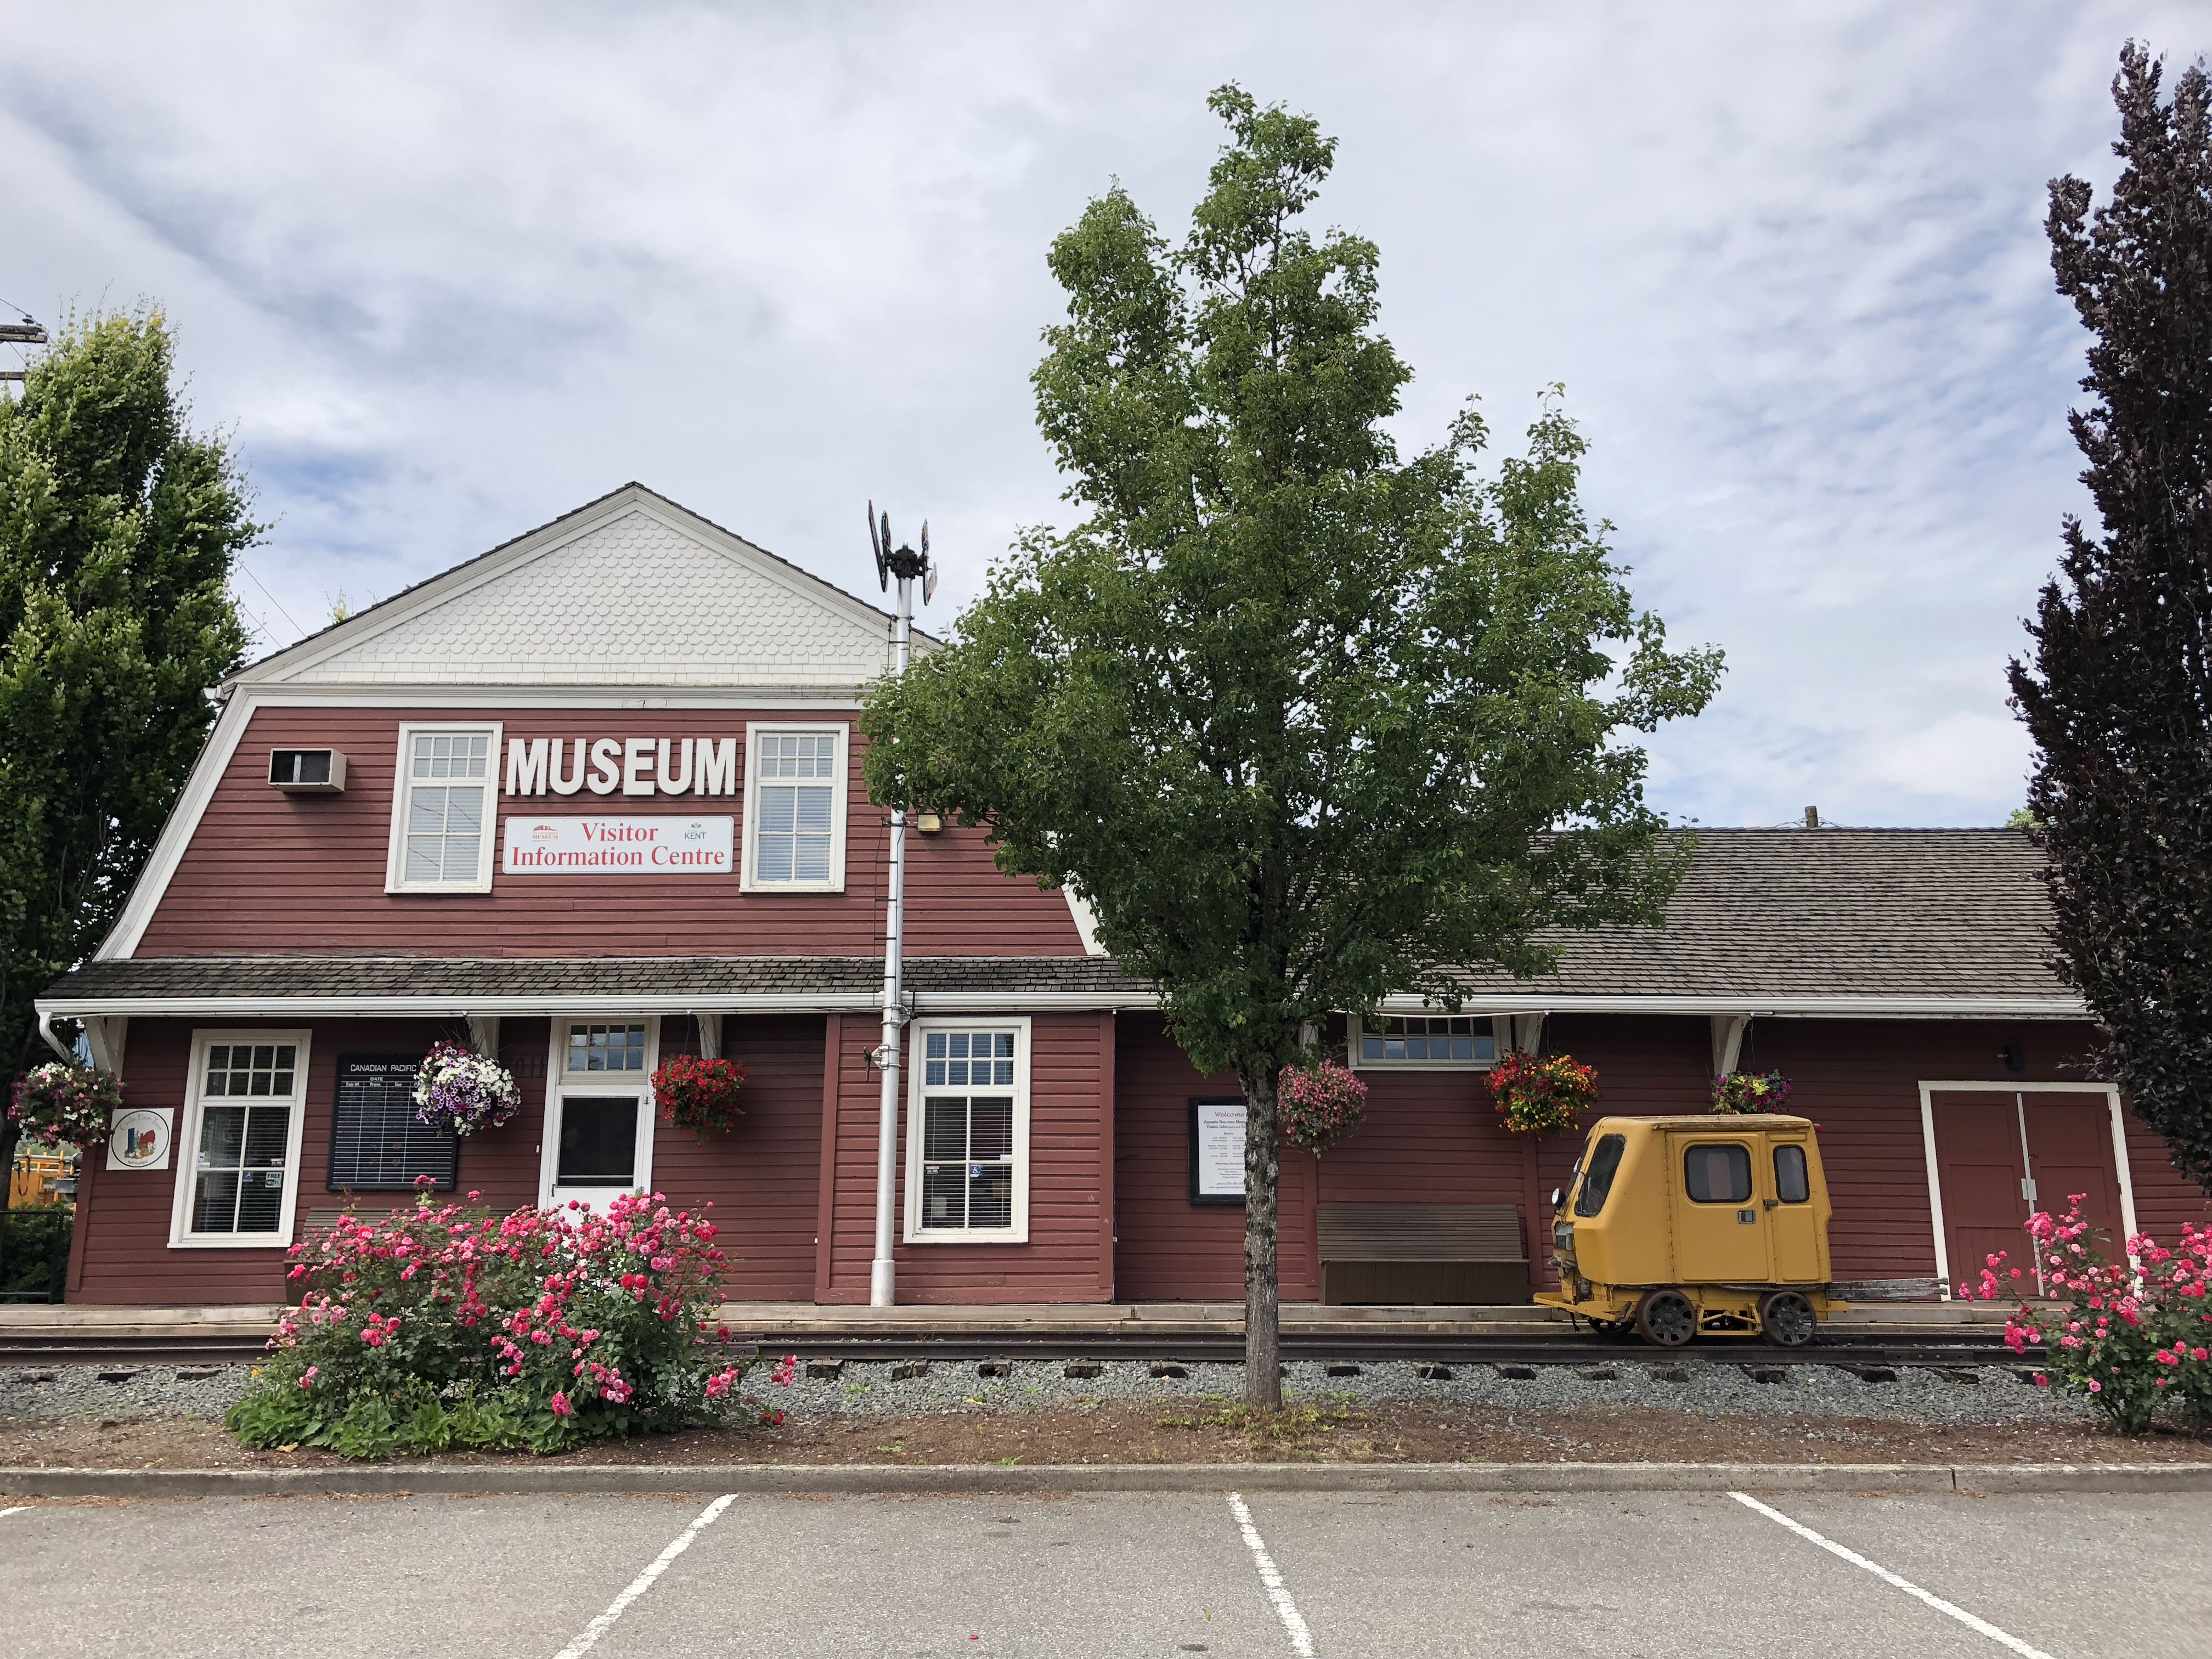 Colour photograph of a red and white barn-shaped historic train station, now the Agassiz-Harrison Museum and Visitor Information Centre.